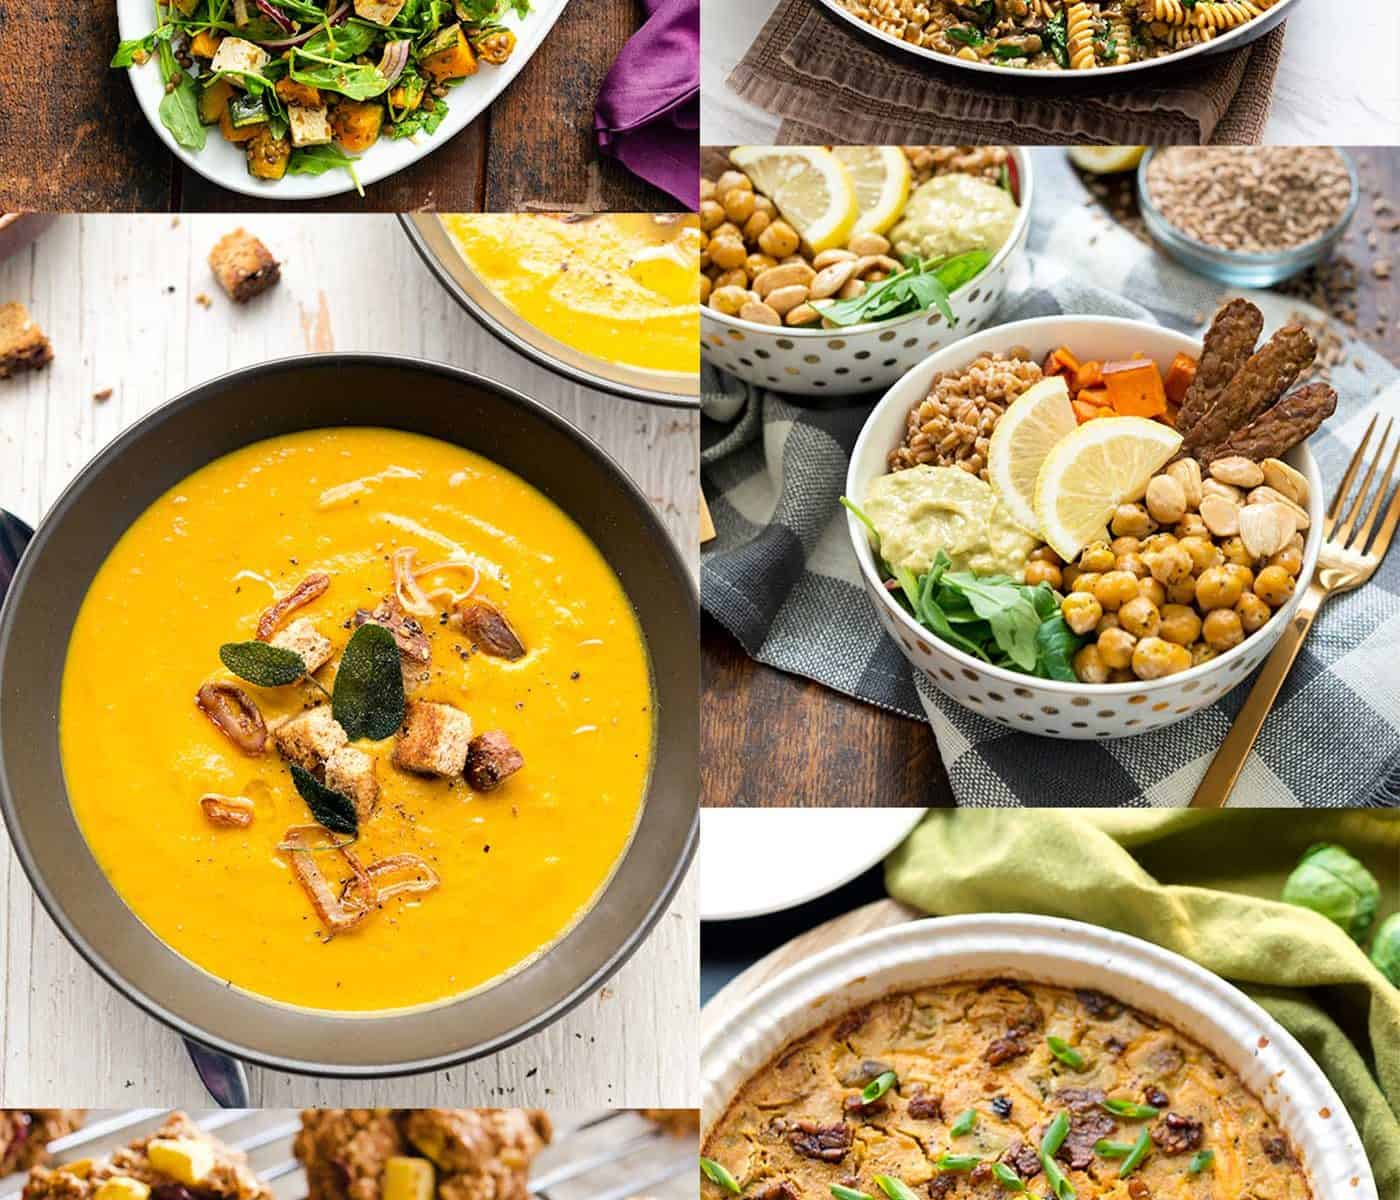 Image collage of autumn seasonal vegan dishes, including soup, pasta, quiche, cookies, and salad